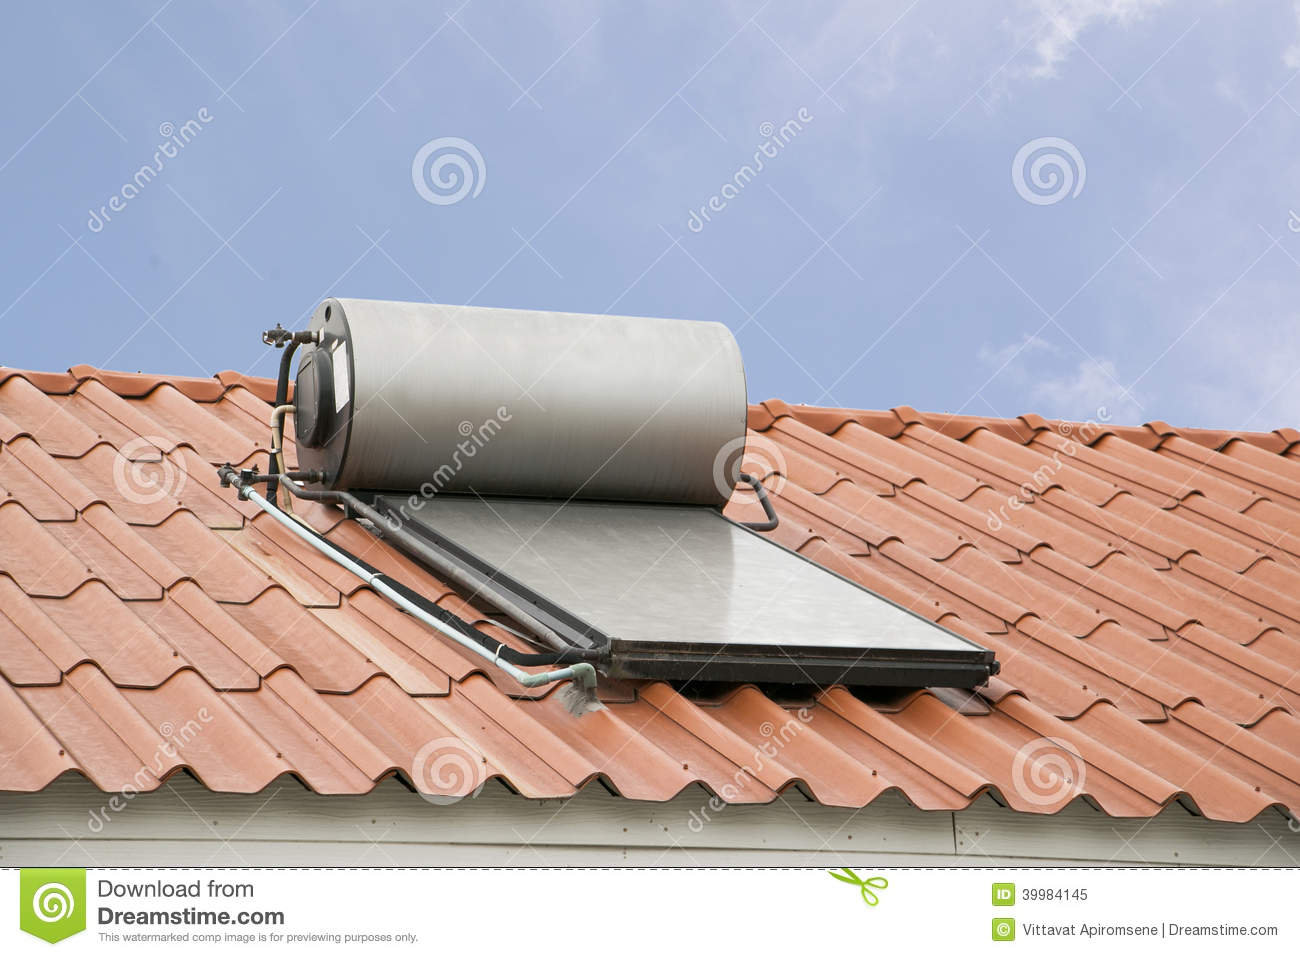 Solar Panel For Hot Water System On Roof Stock Photo